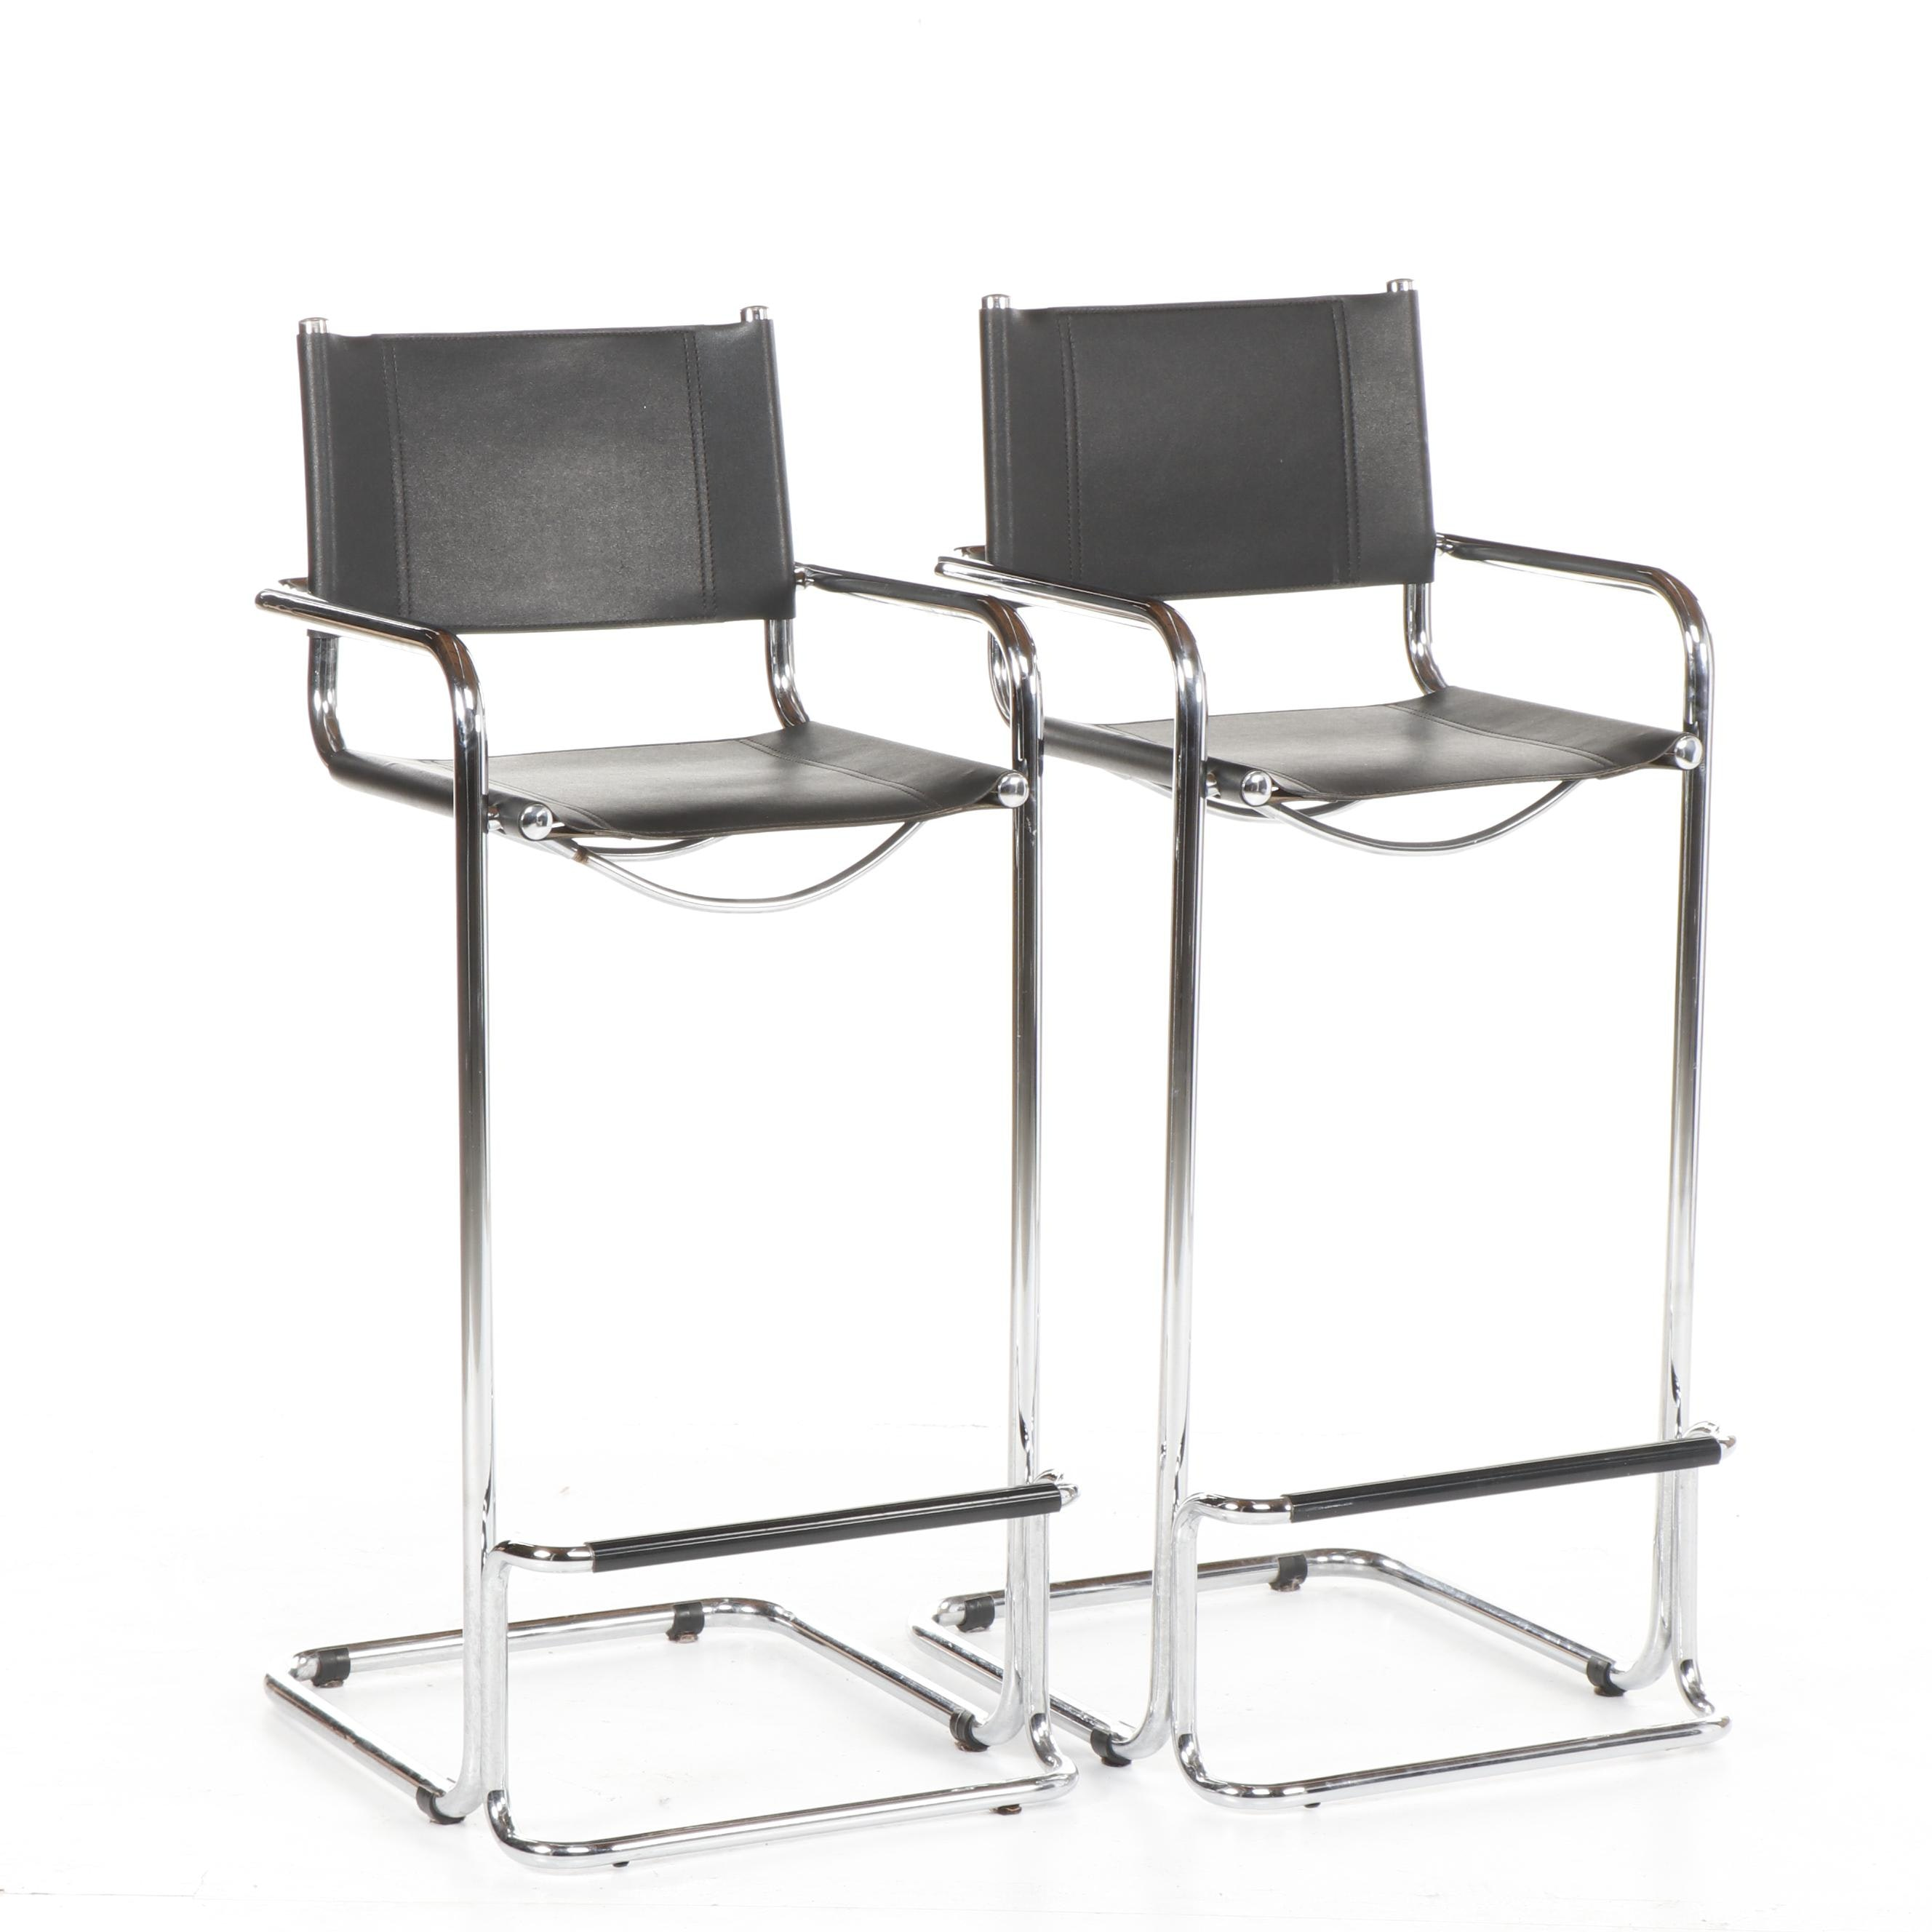 Modern Style Chrome and Leather Barstools, 21st Century